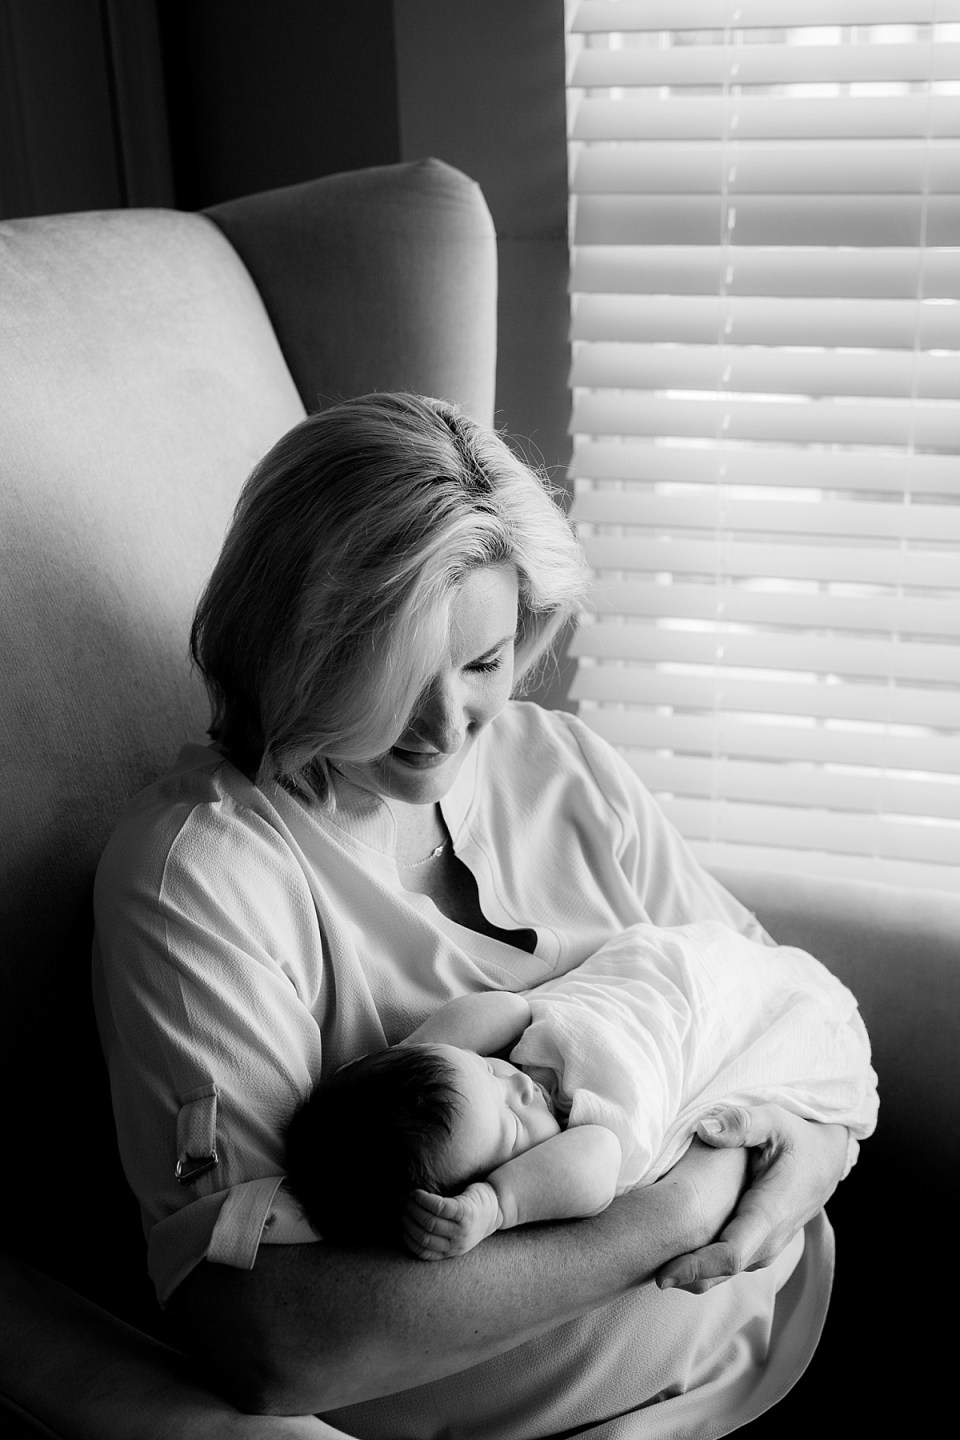 black and white newborn photography in home by Alexandria Newborn Photographer, Erin Tetterton